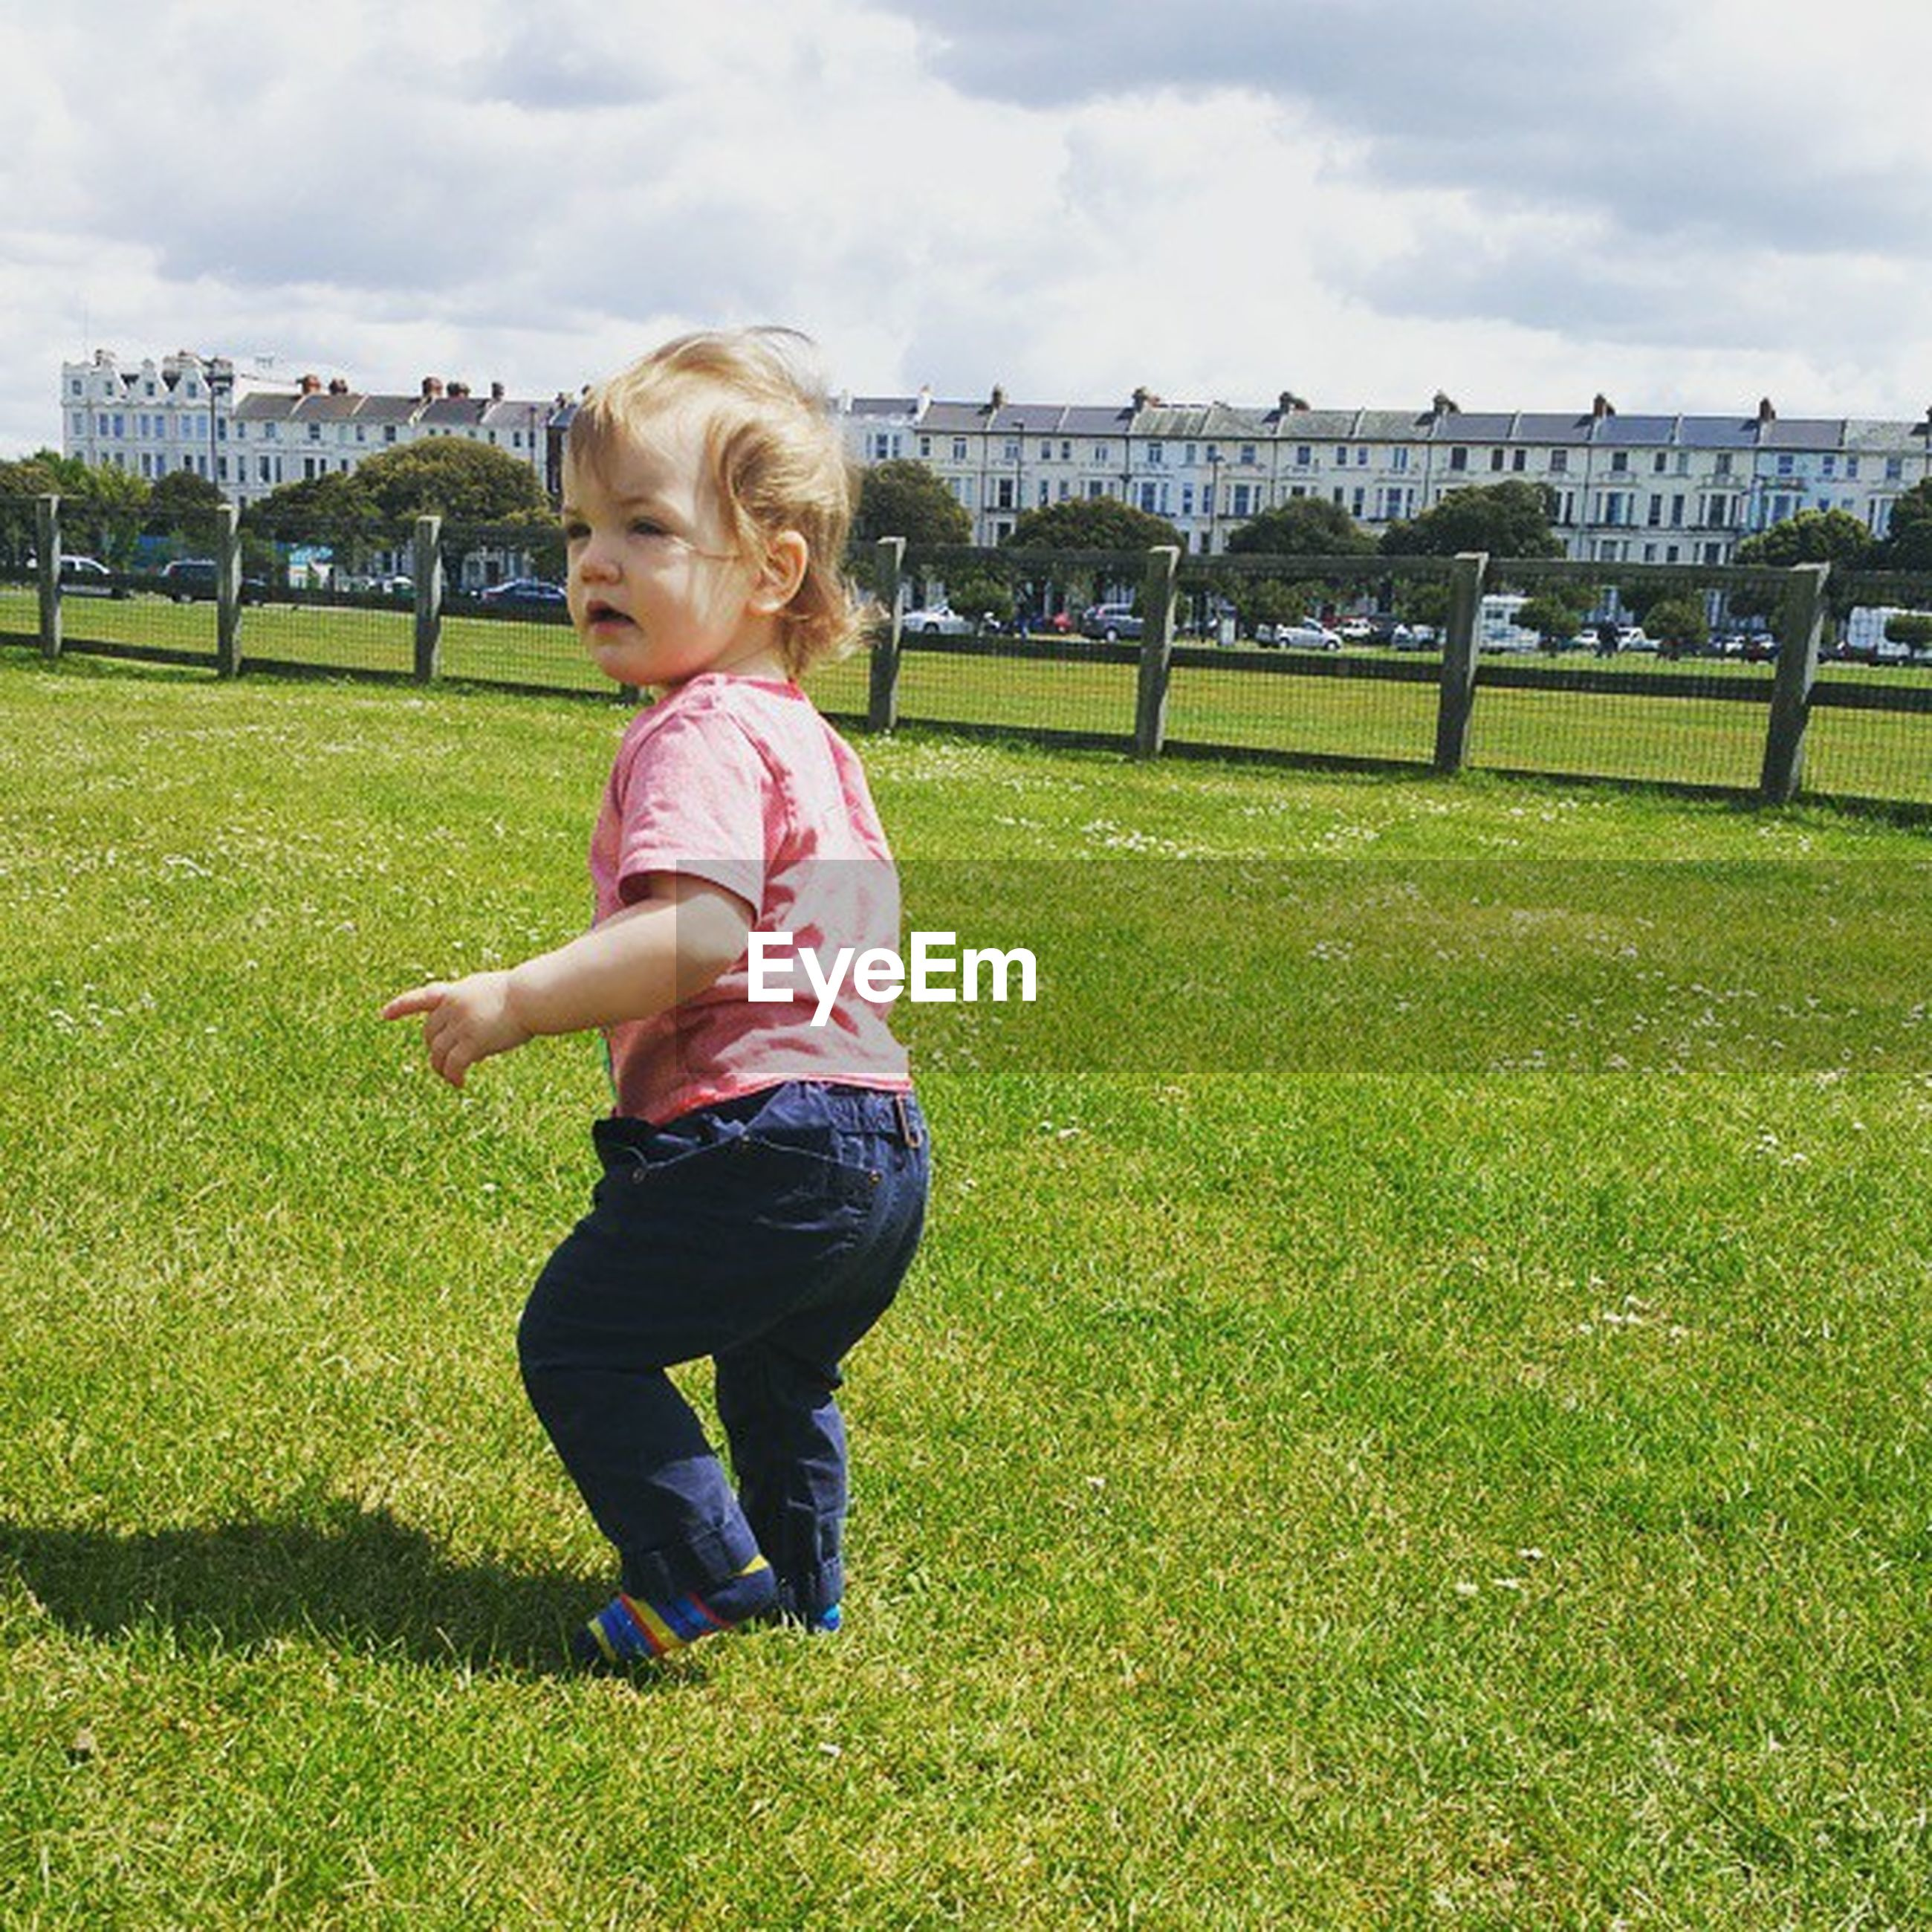 childhood, grass, elementary age, girls, full length, person, leisure activity, lifestyles, boys, grassy, casual clothing, innocence, playing, playful, cute, park - man made space, field, lawn